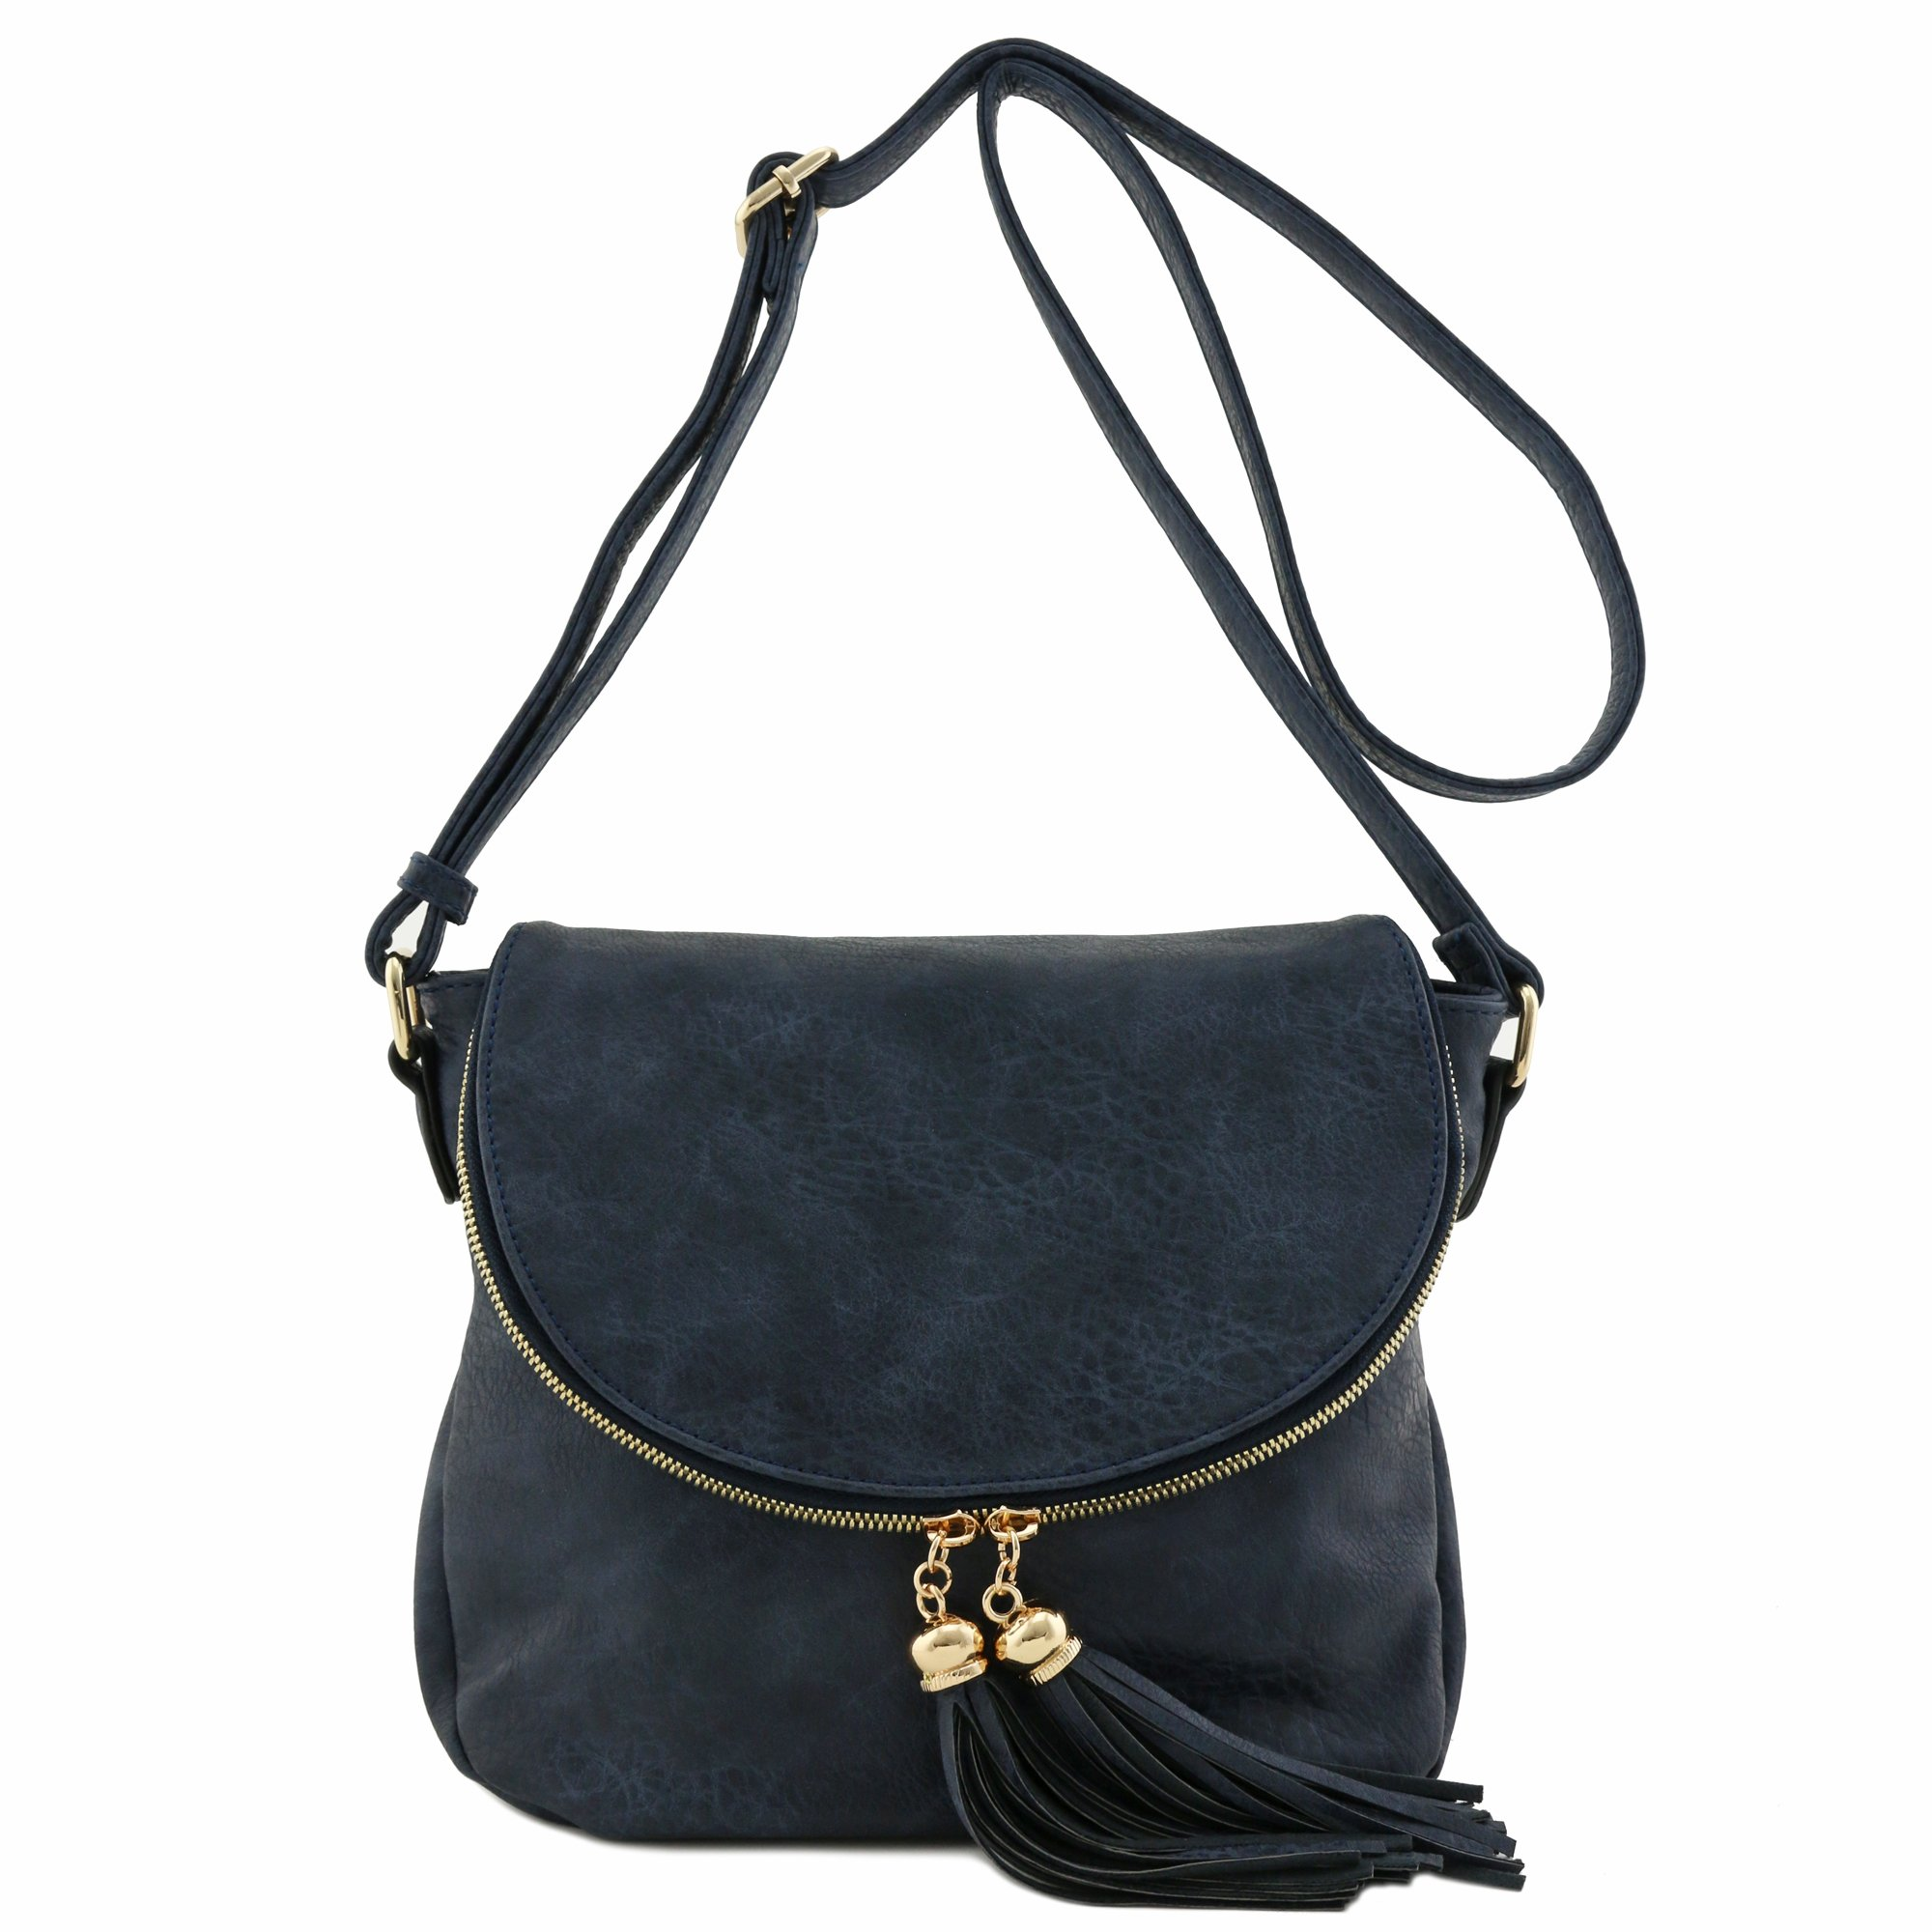 Tassel Accent Crossbody Bag with Flap Top (Navy)